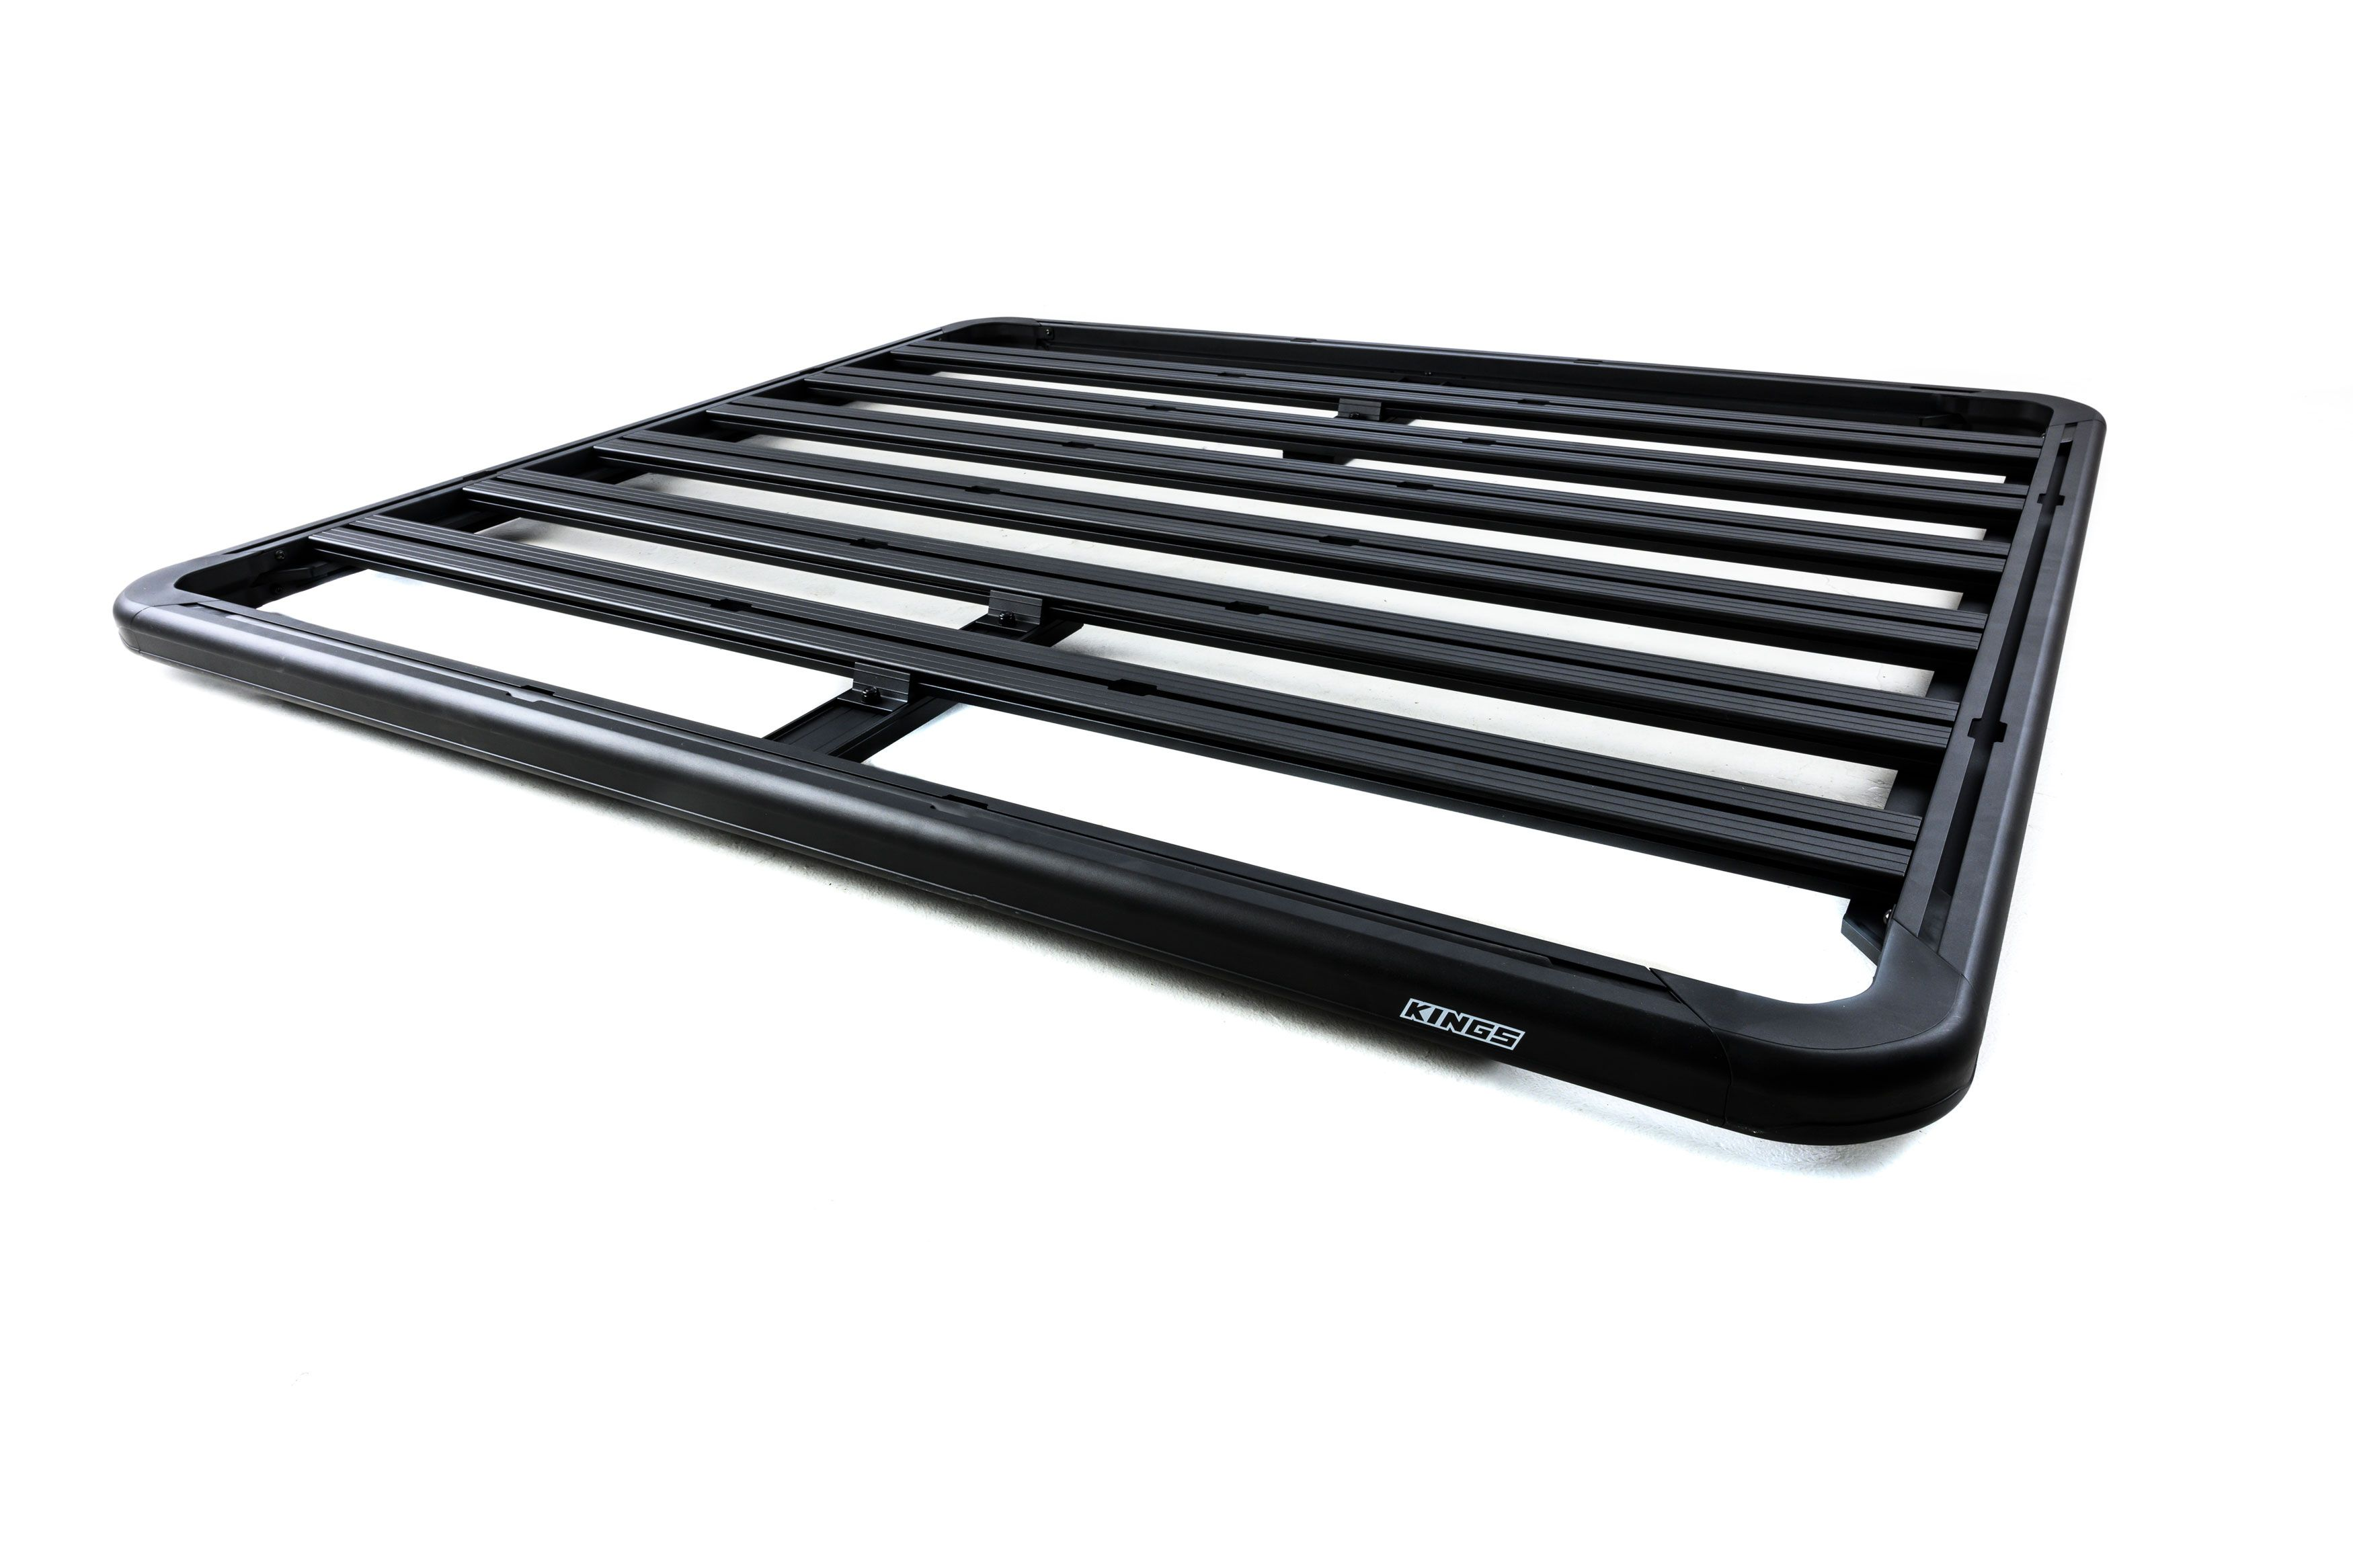 Adventure Kings Aluminium Platform Roof Rack Suitable for Toyota Landcruiser 79 Series Single-Cab 1999+